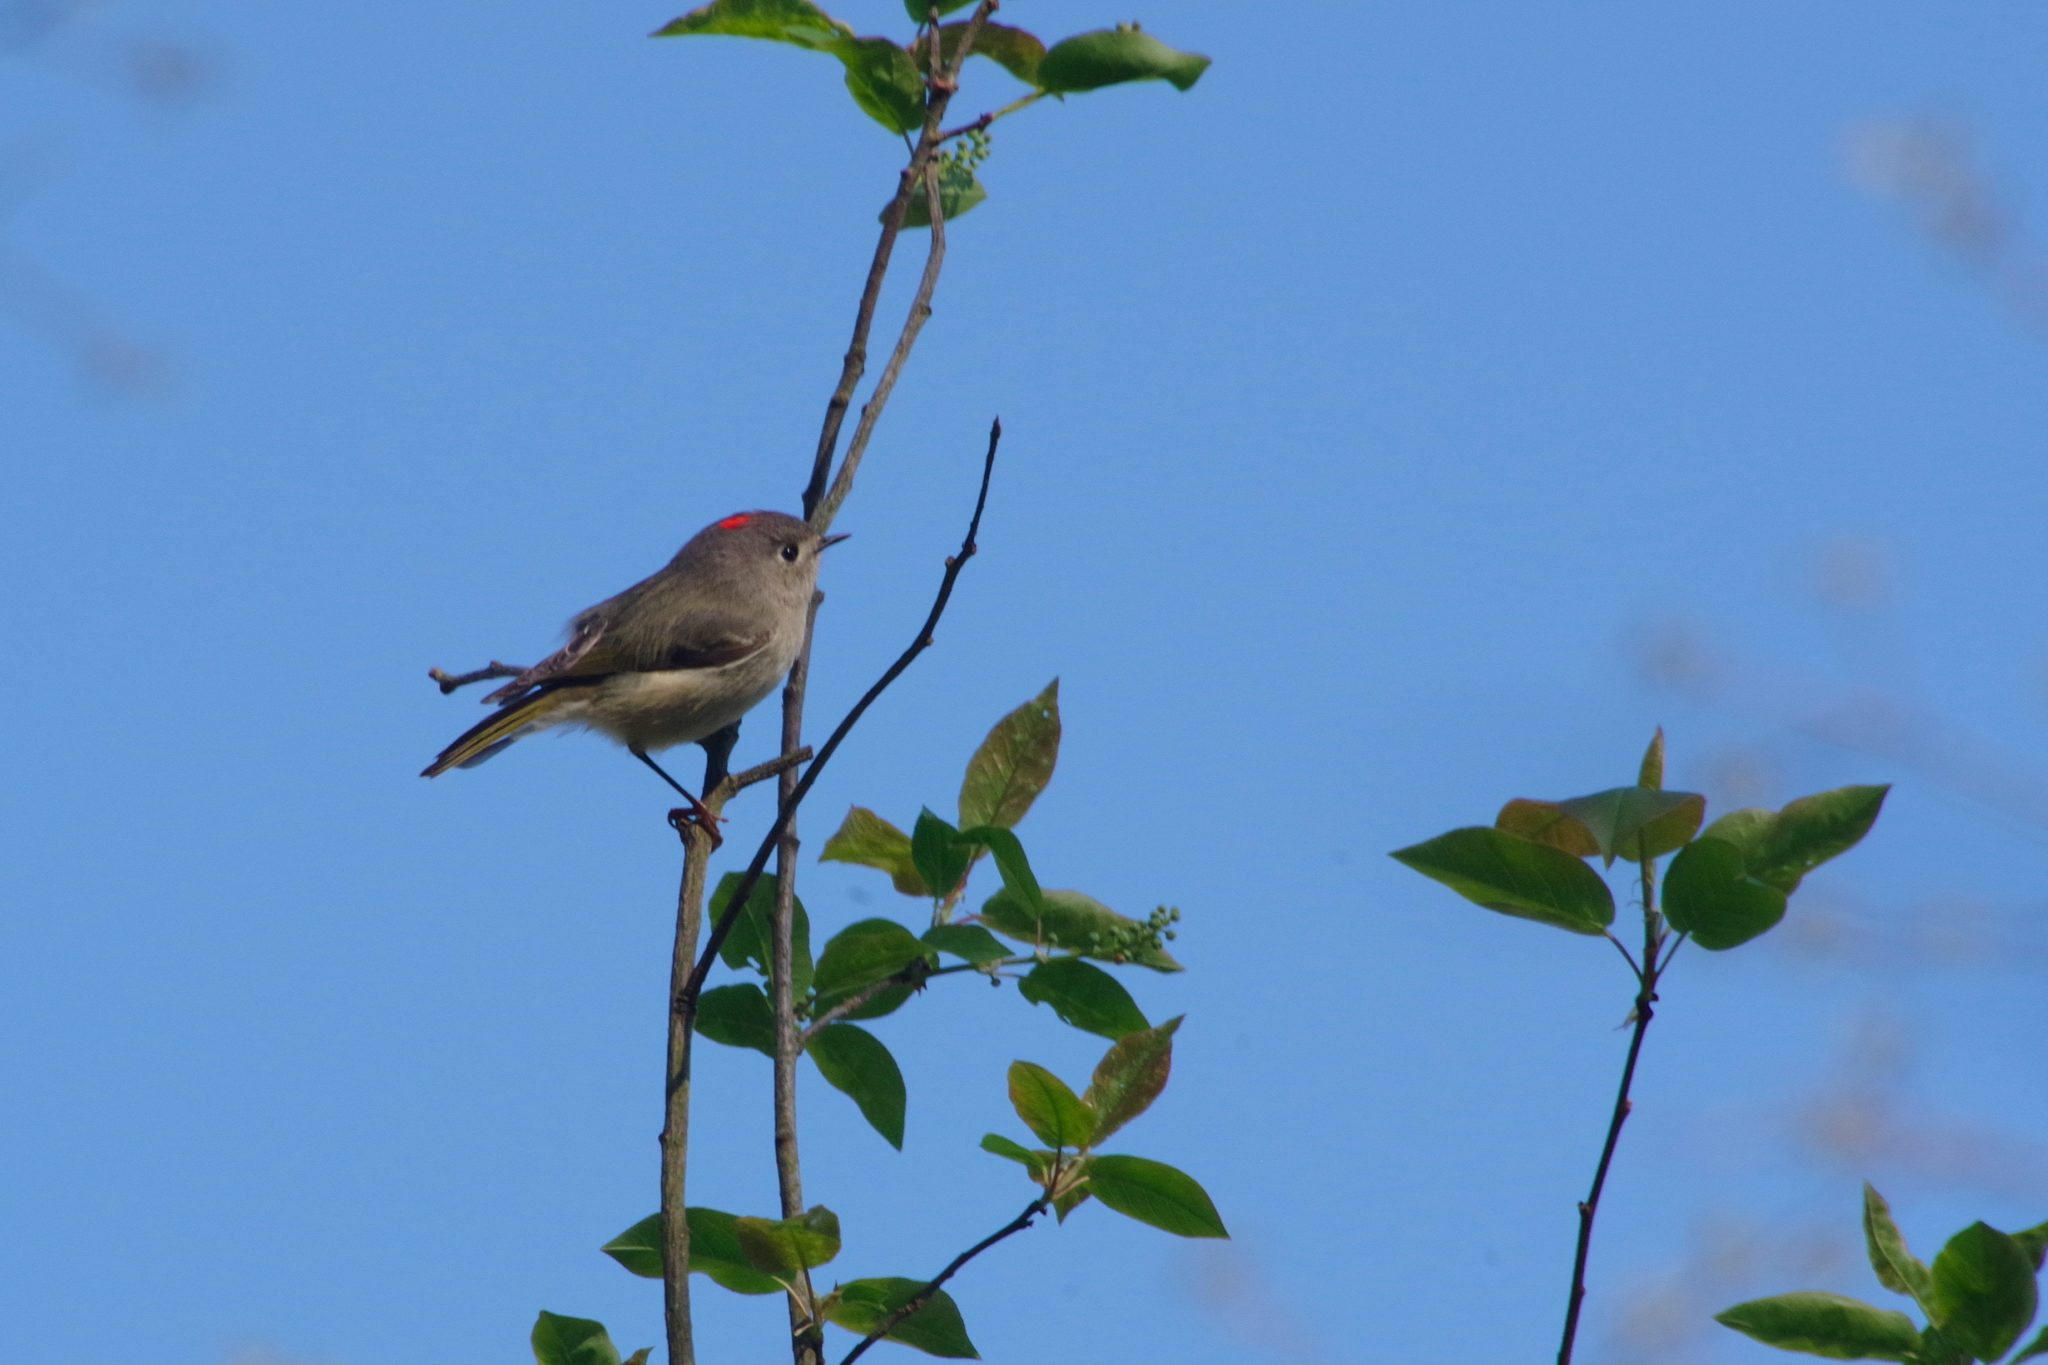 Ruby-crowned kinglet in a tree